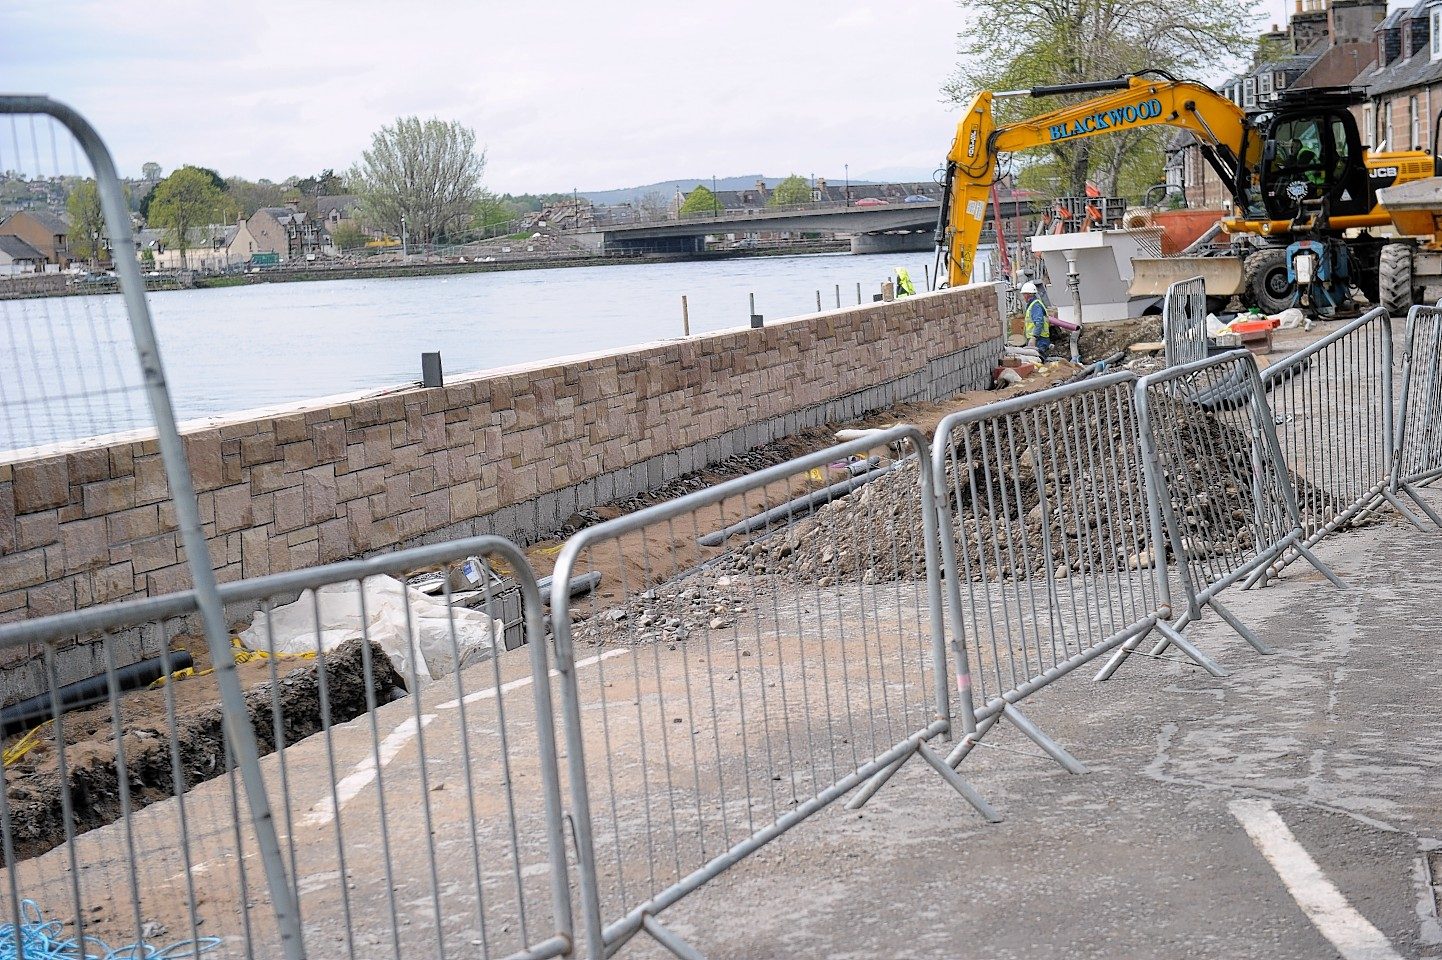 Work on the Inverness flood scheme was late and over budget.